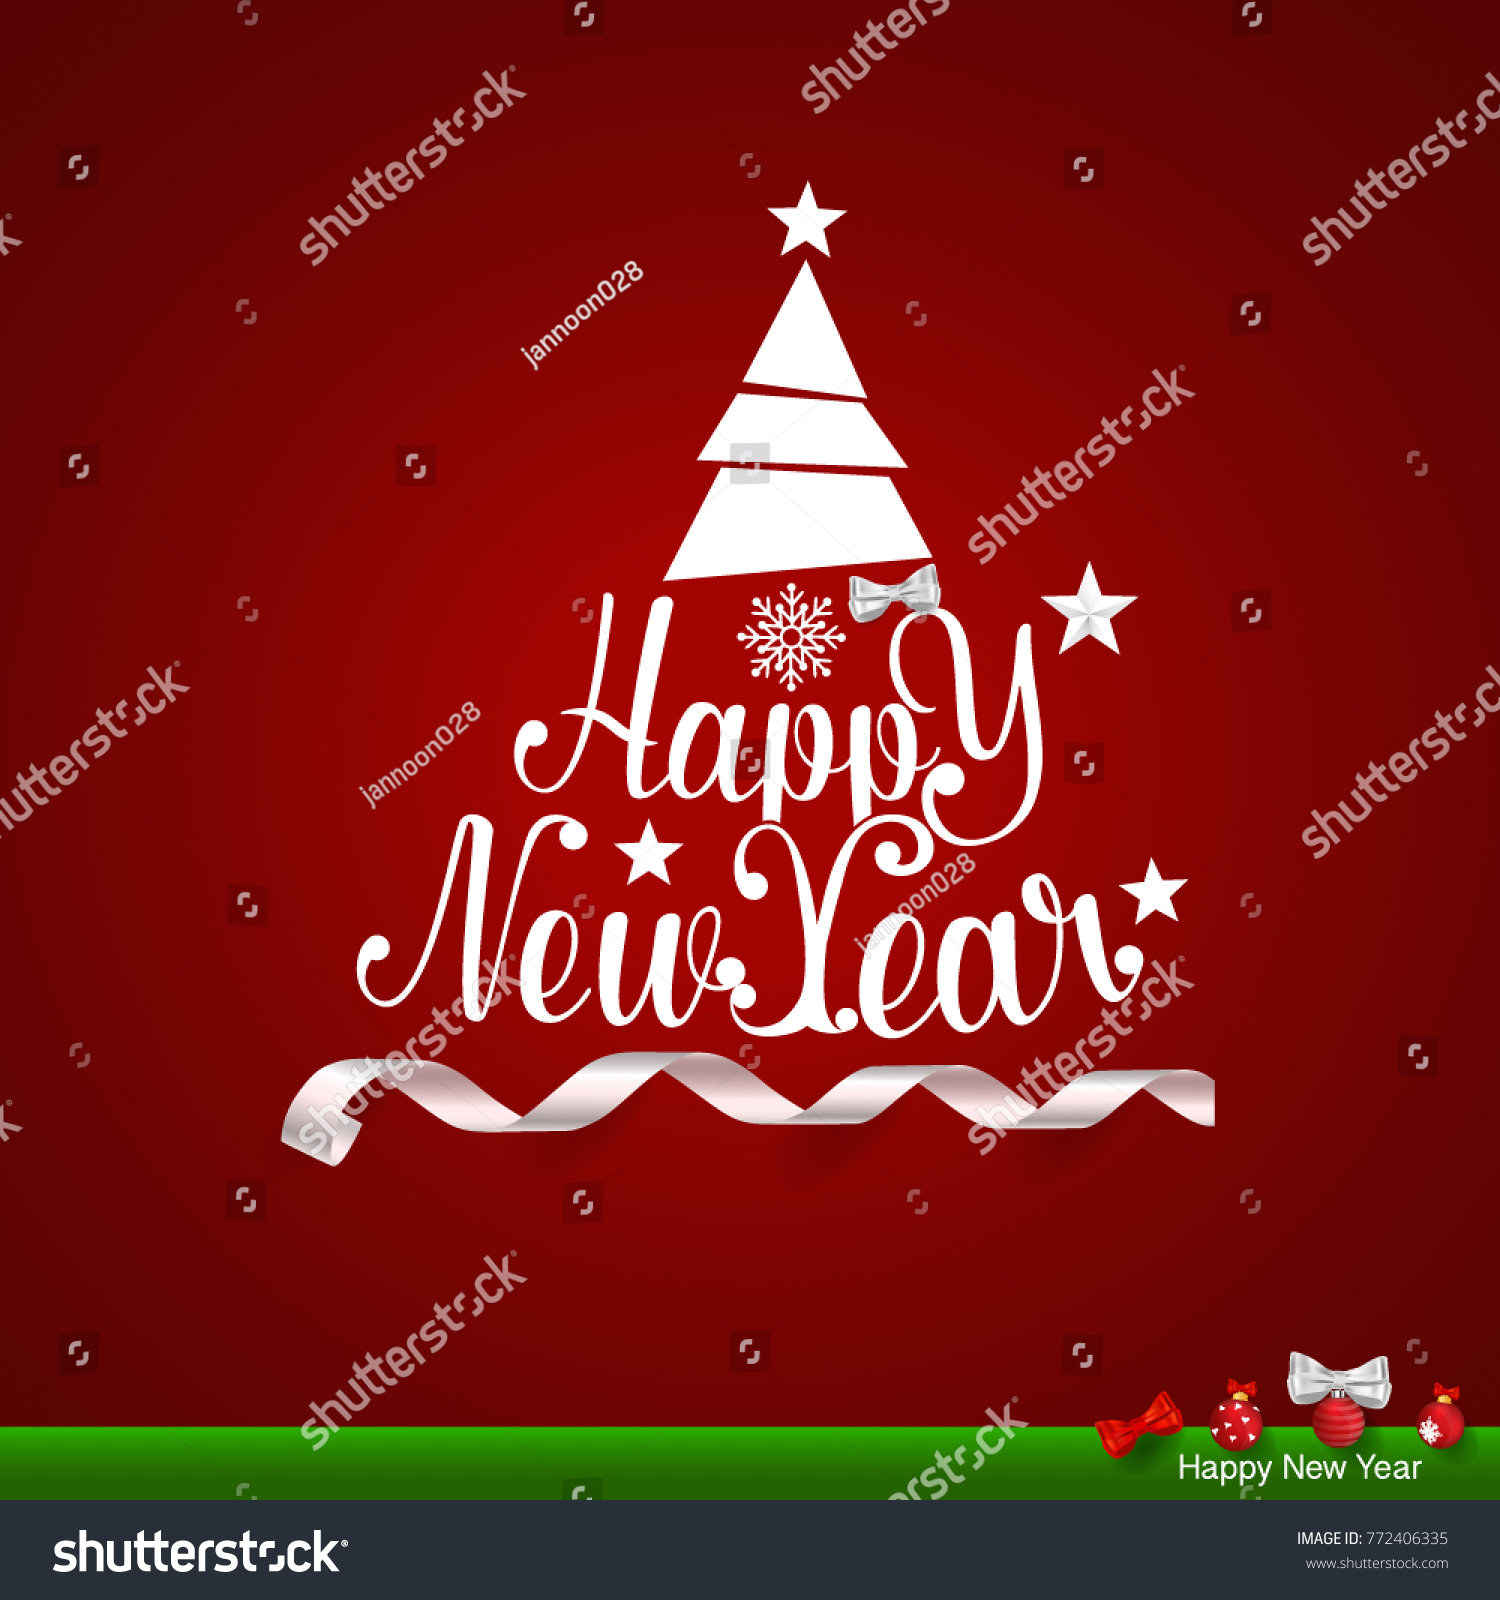 Merry christmas happy new year greeting stock vector royalty free merry christmas and happy new year greeting card vector illustration m4hsunfo